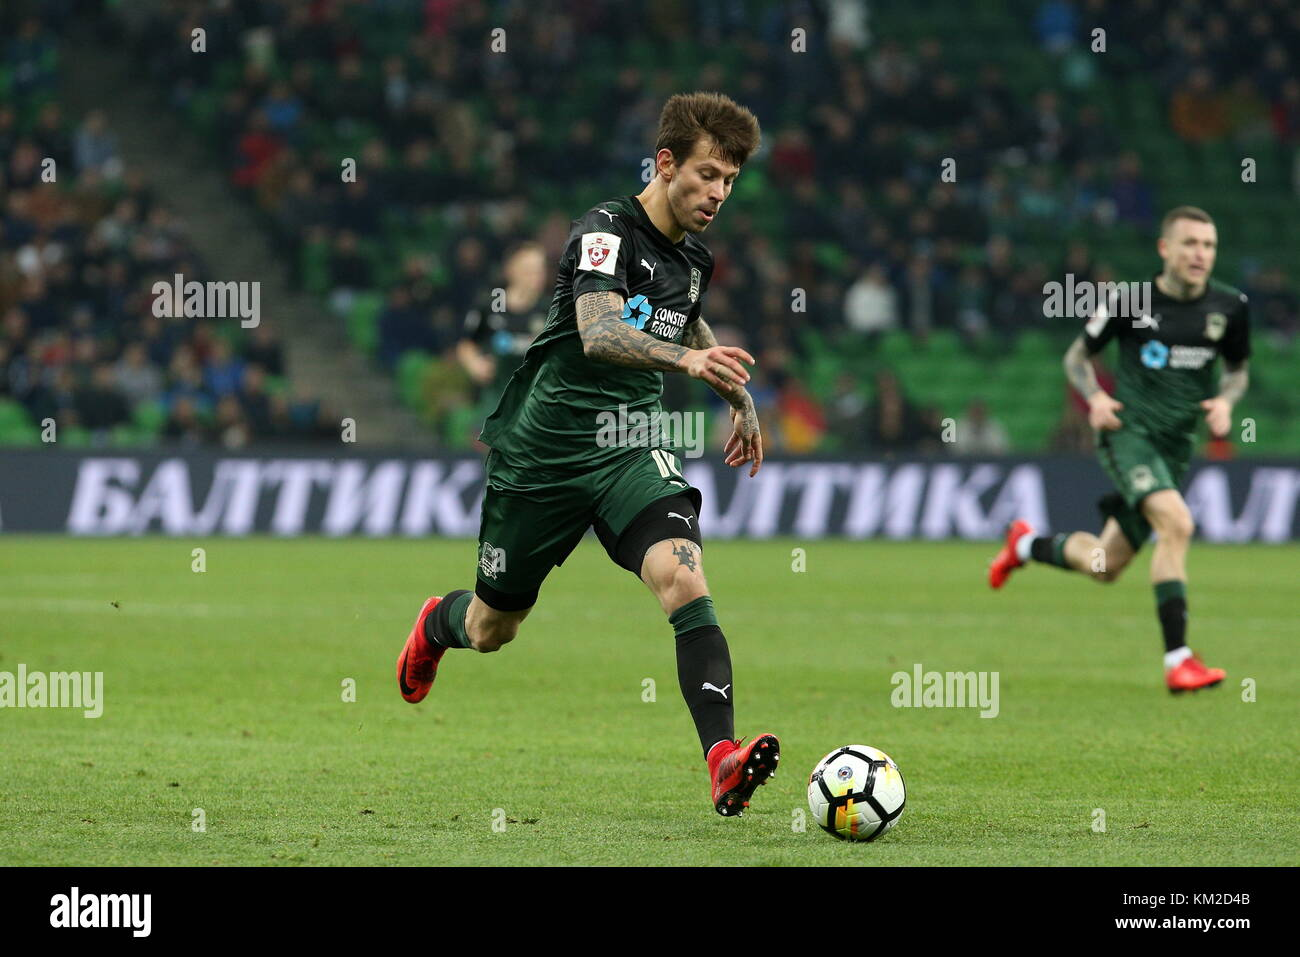 Krasnodar Russia December 3 2017 Fc Krasnodar S Fyodor Smolov In Stock Photo Alamy